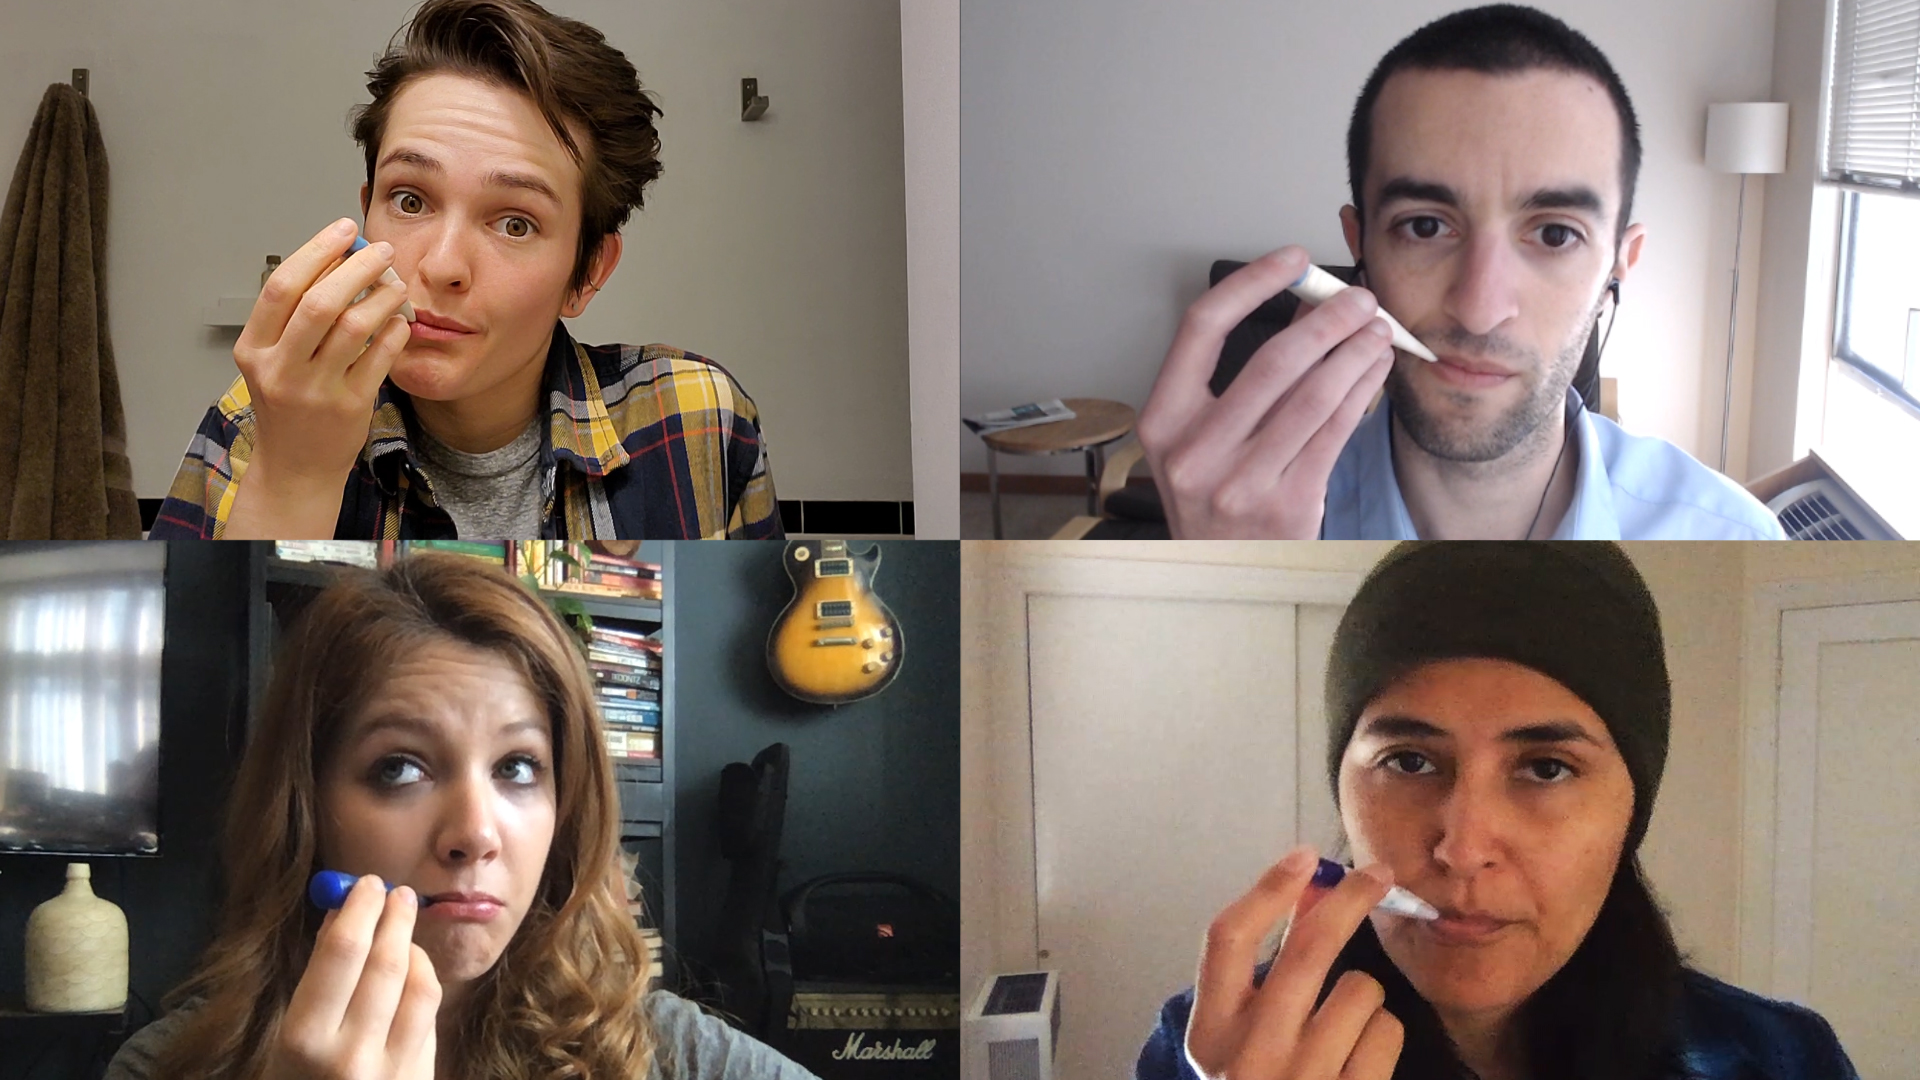 a montage of Verge employees take their temperature